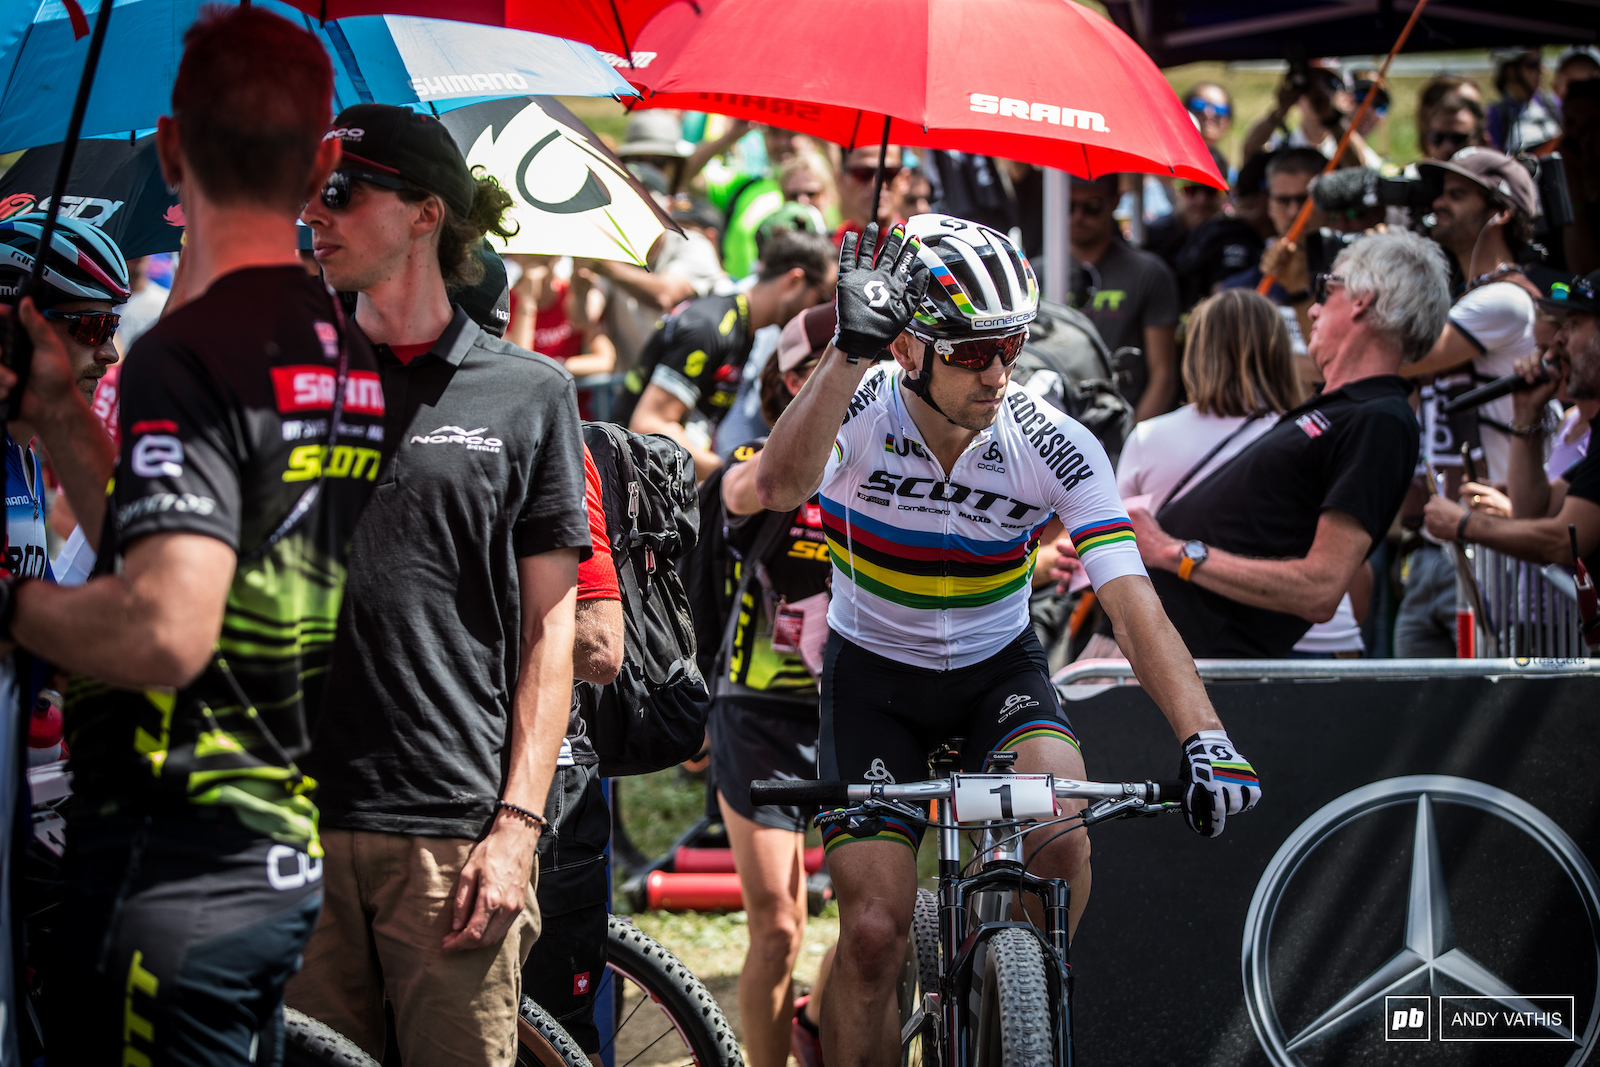 Nino Schurter definitely has the endurance for this course but as we seen so far this season so do a few others on the front line.